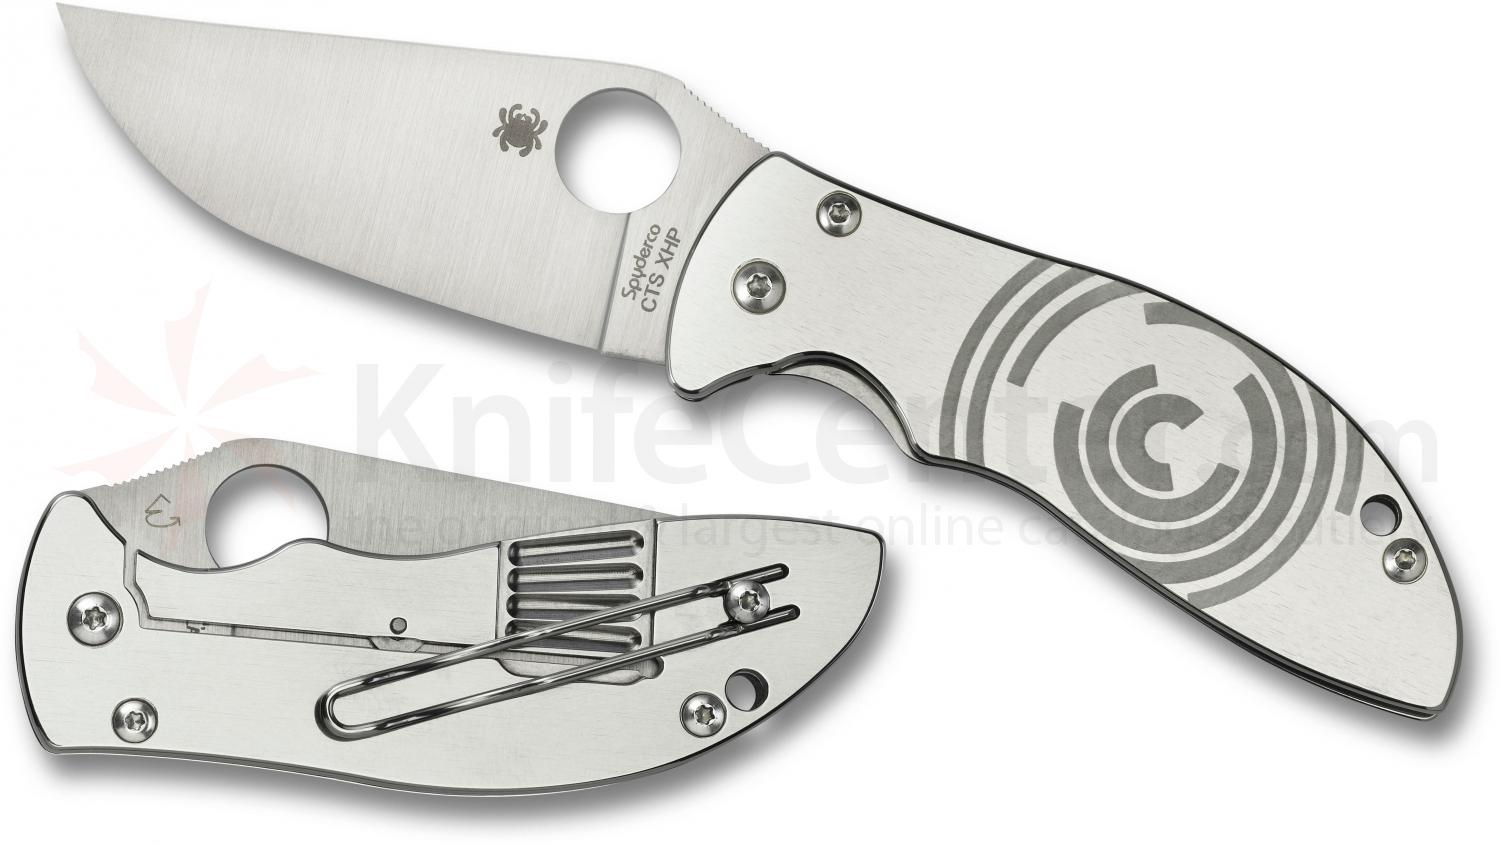 Spyderco C160P Carpenter Foundry Folding 3.33 inch CTS-XHP Plain Blade, Stainless Steel Handles